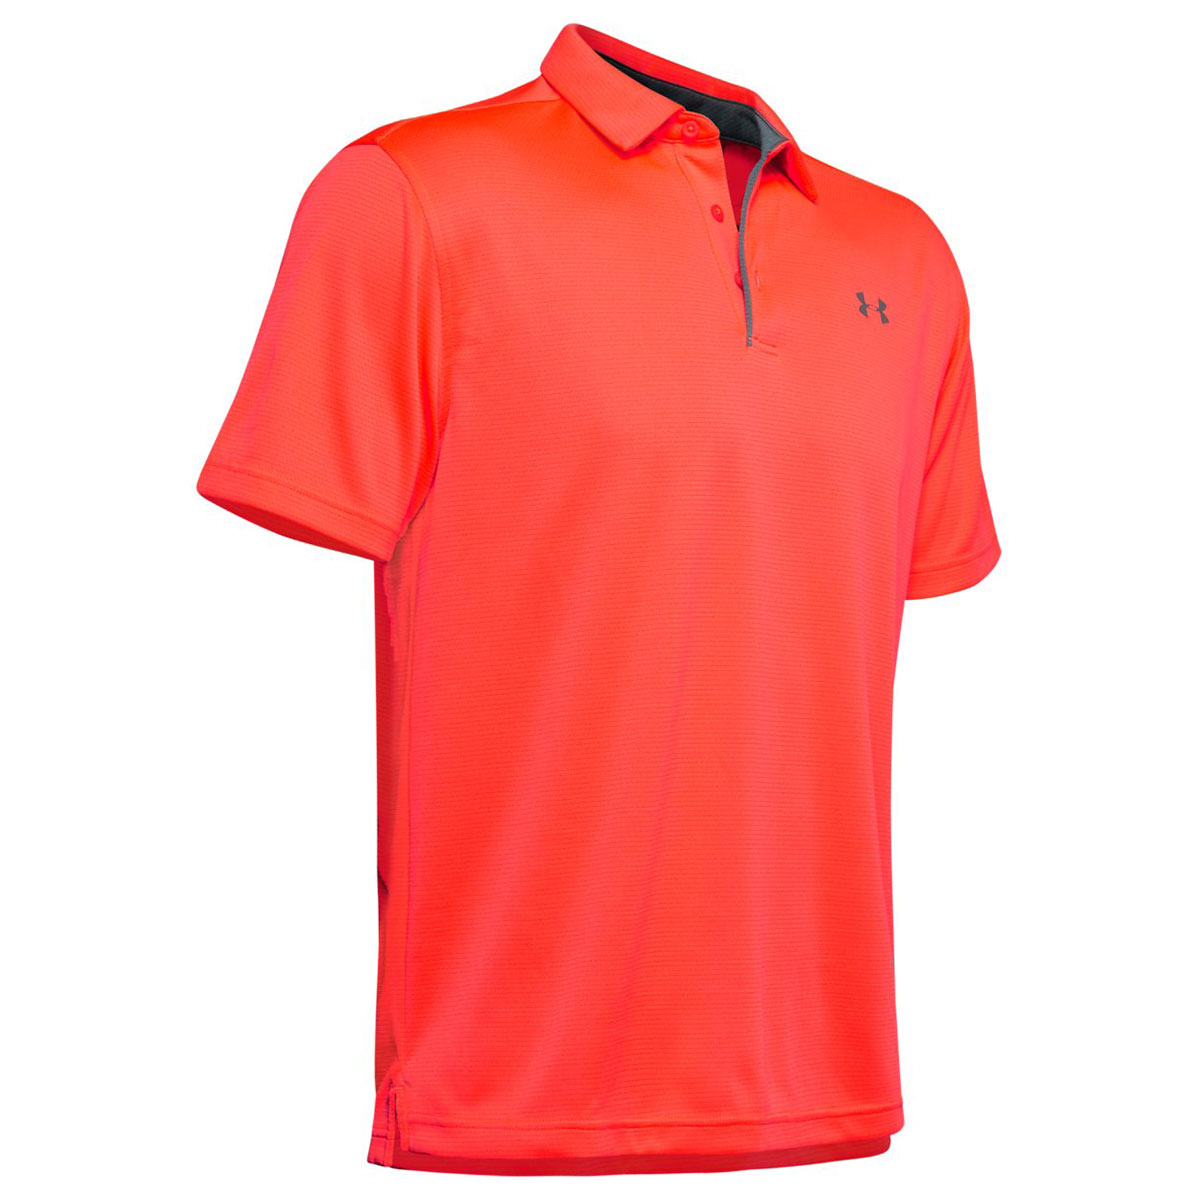 Under-Armour-Mens-Golf-Tech-Wicking-Textured-Soft-Light-Polo-Shirt thumbnail 16